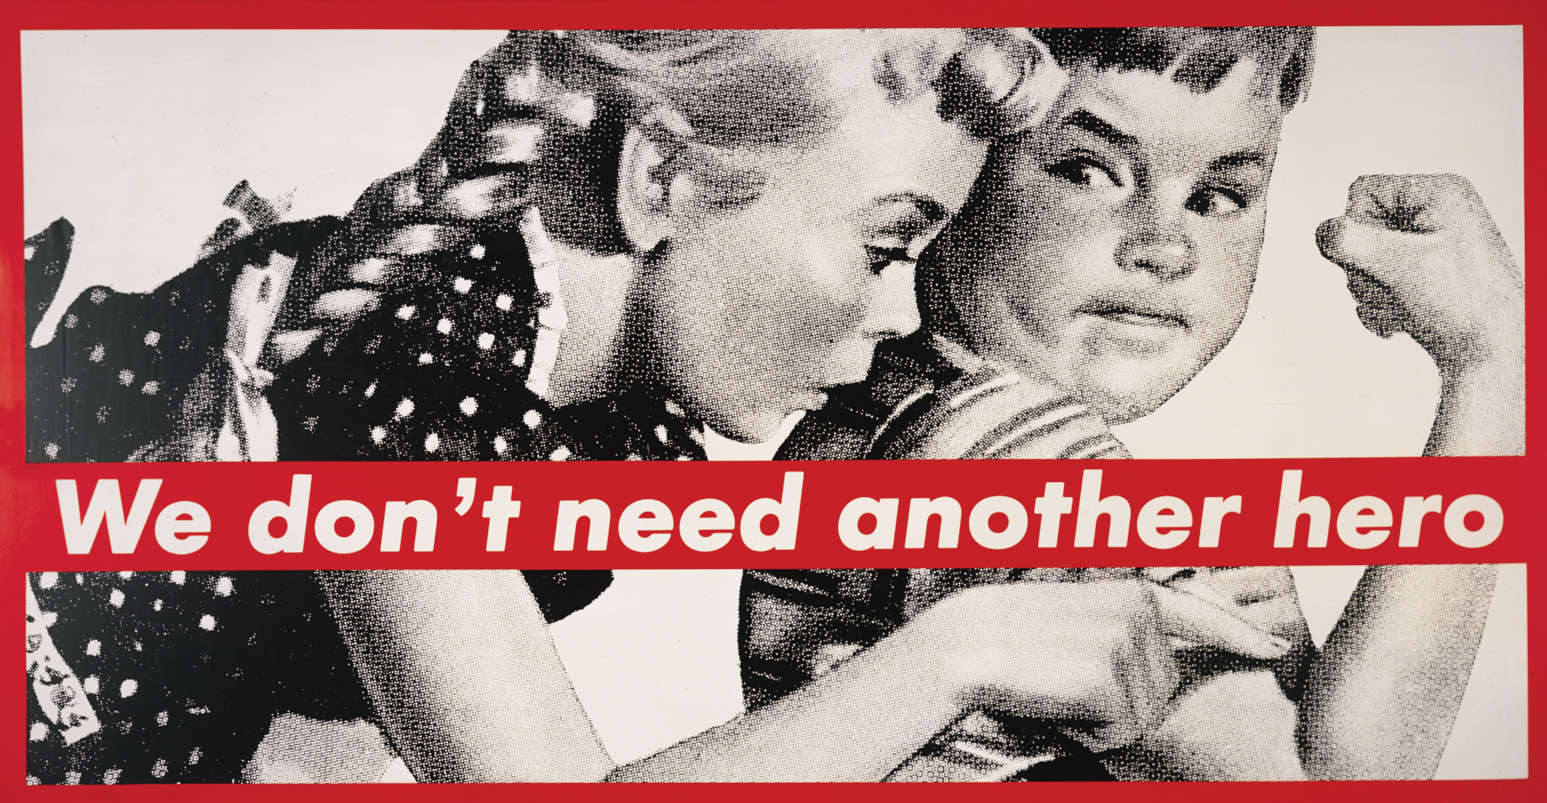 Barbara Kruger, We don't need another hero